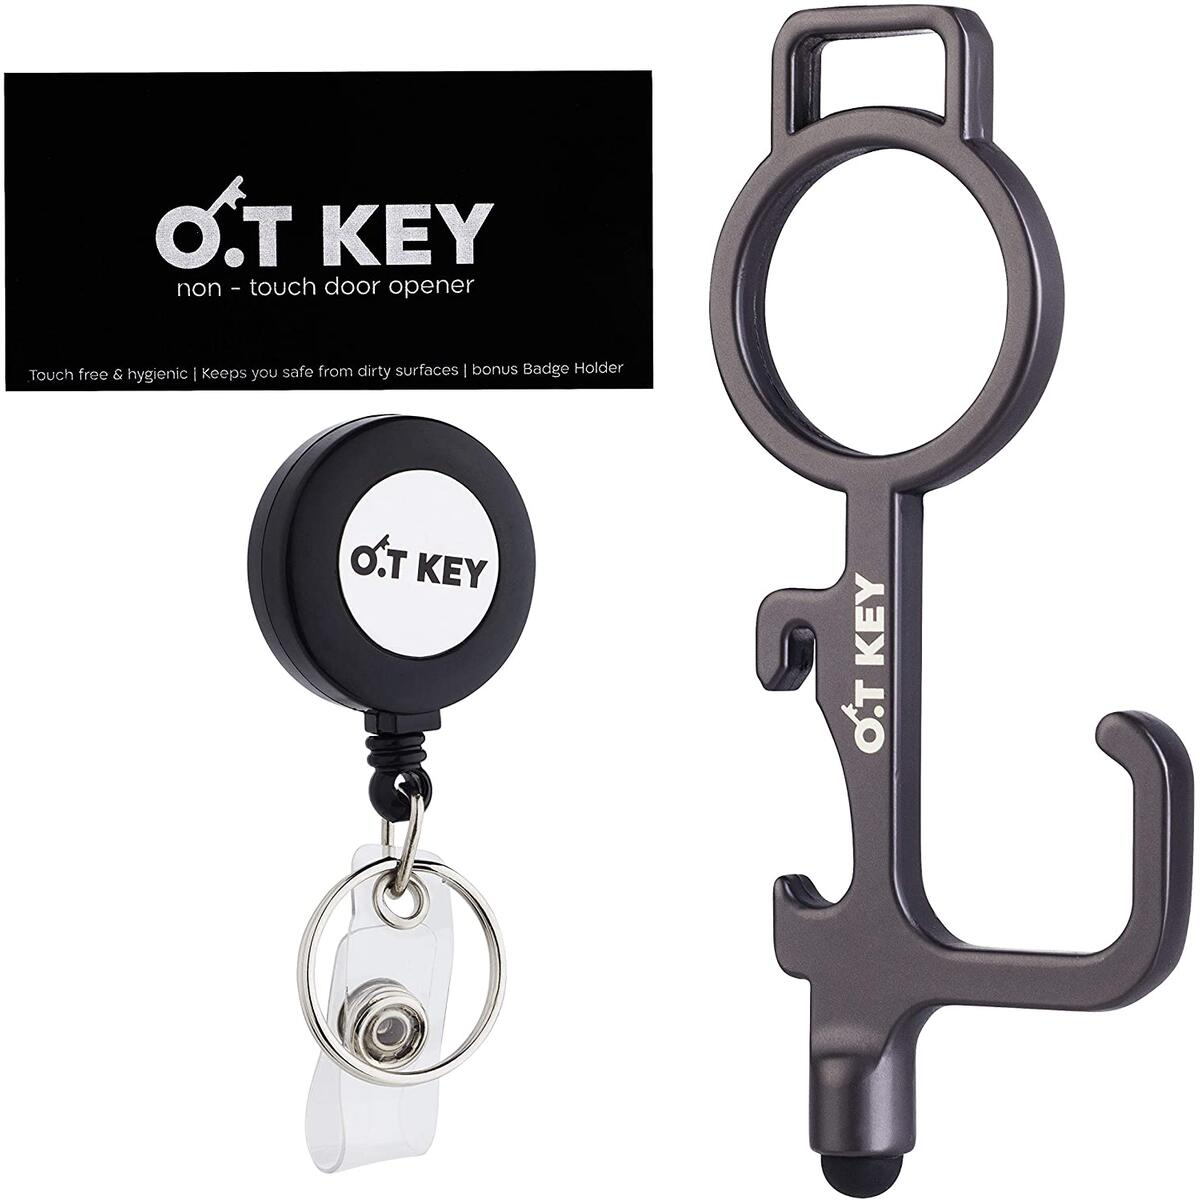 O.T Clean Key - No Touch Door Opener Tool & Stylus Button Pusher - Touchless Keychain Hand Tool for Safe Germ-Free Clean Hands - No Touch Tool for Handles, Buttons and More - Bonus Badge Holder Reel